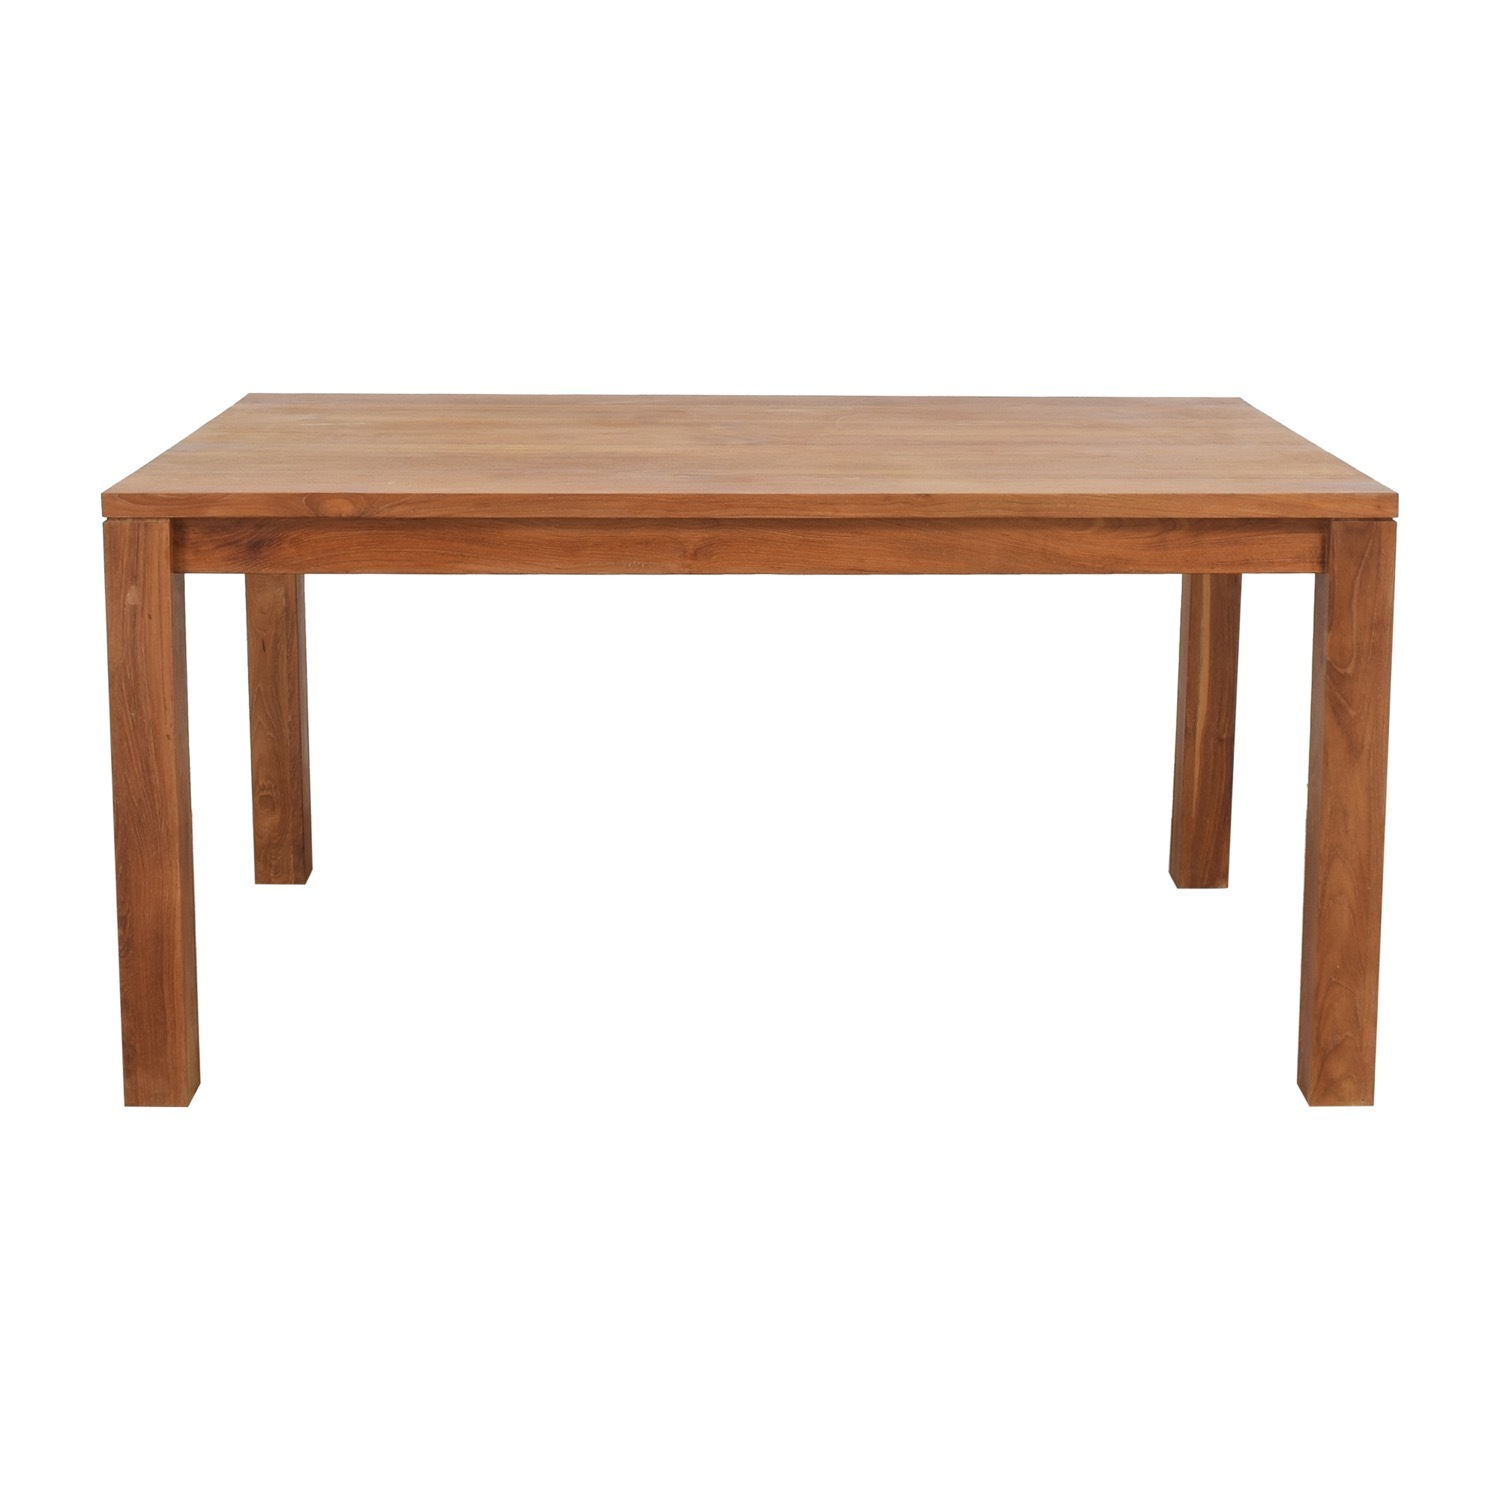 Crate & Barrel Pacifica Dining Table - image-1